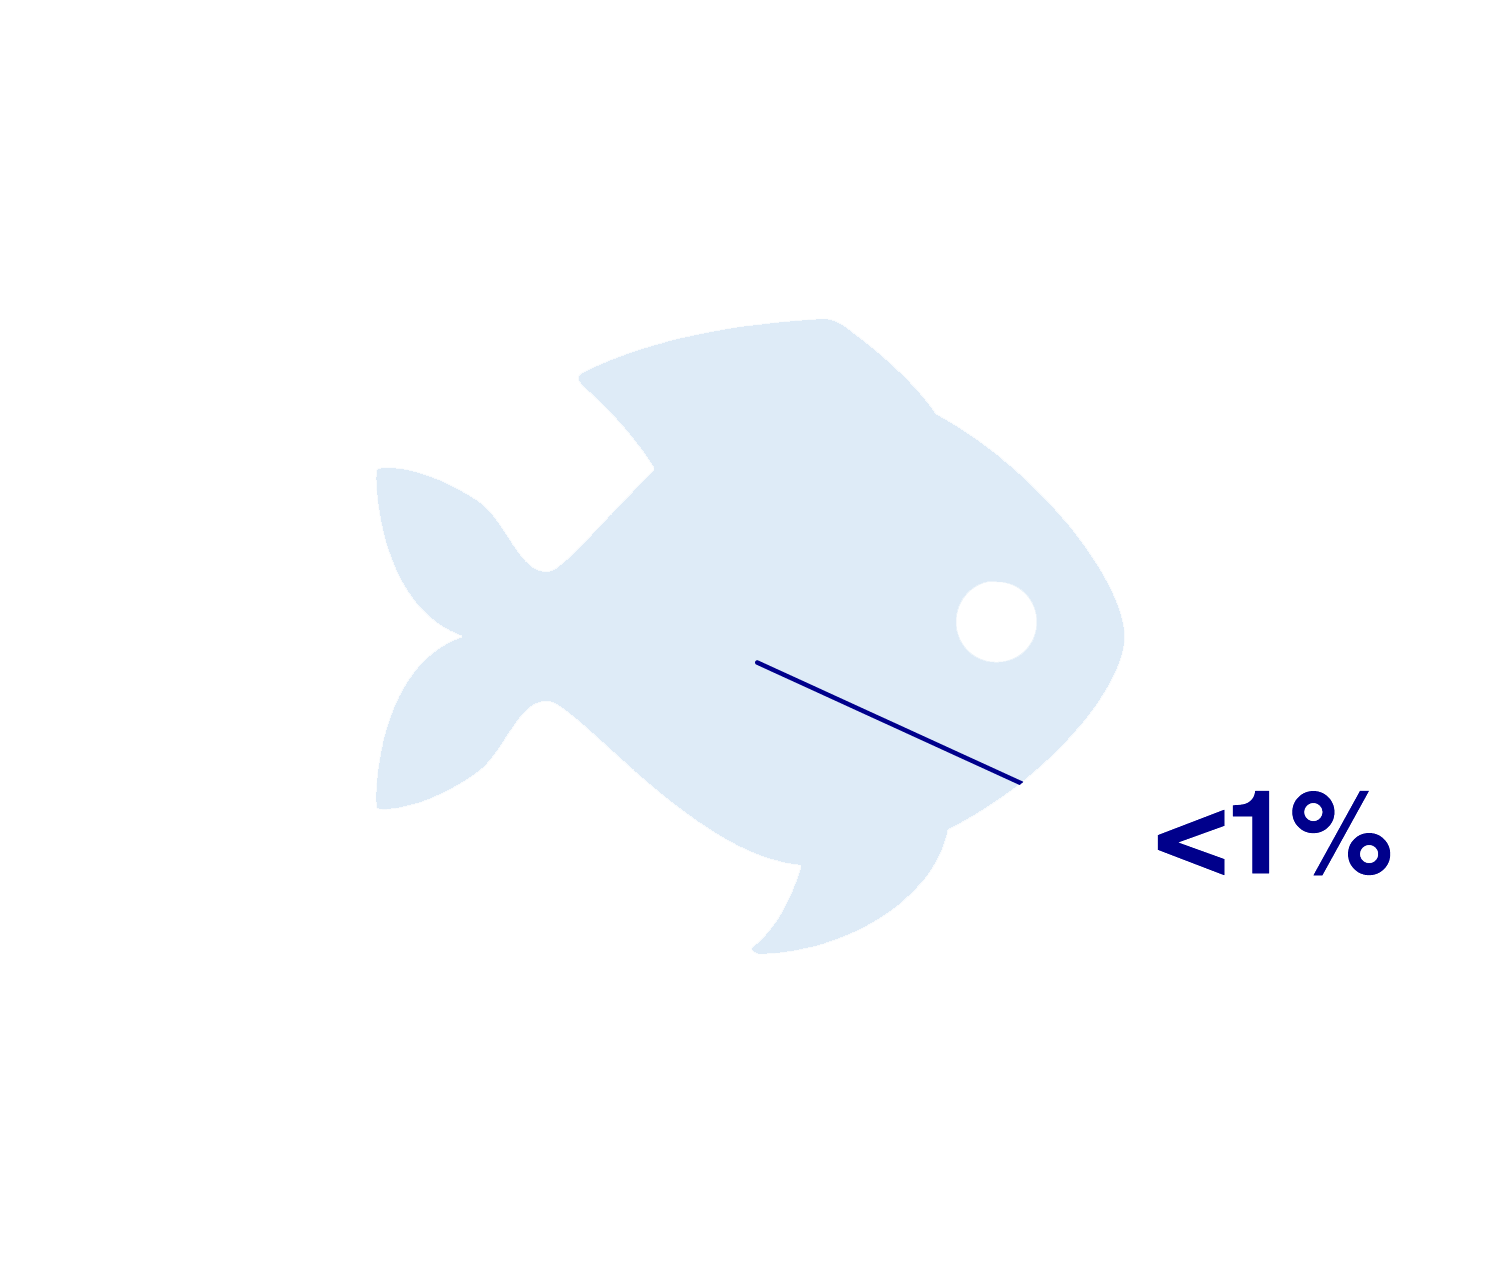 Rainbow_troutfishLow.png